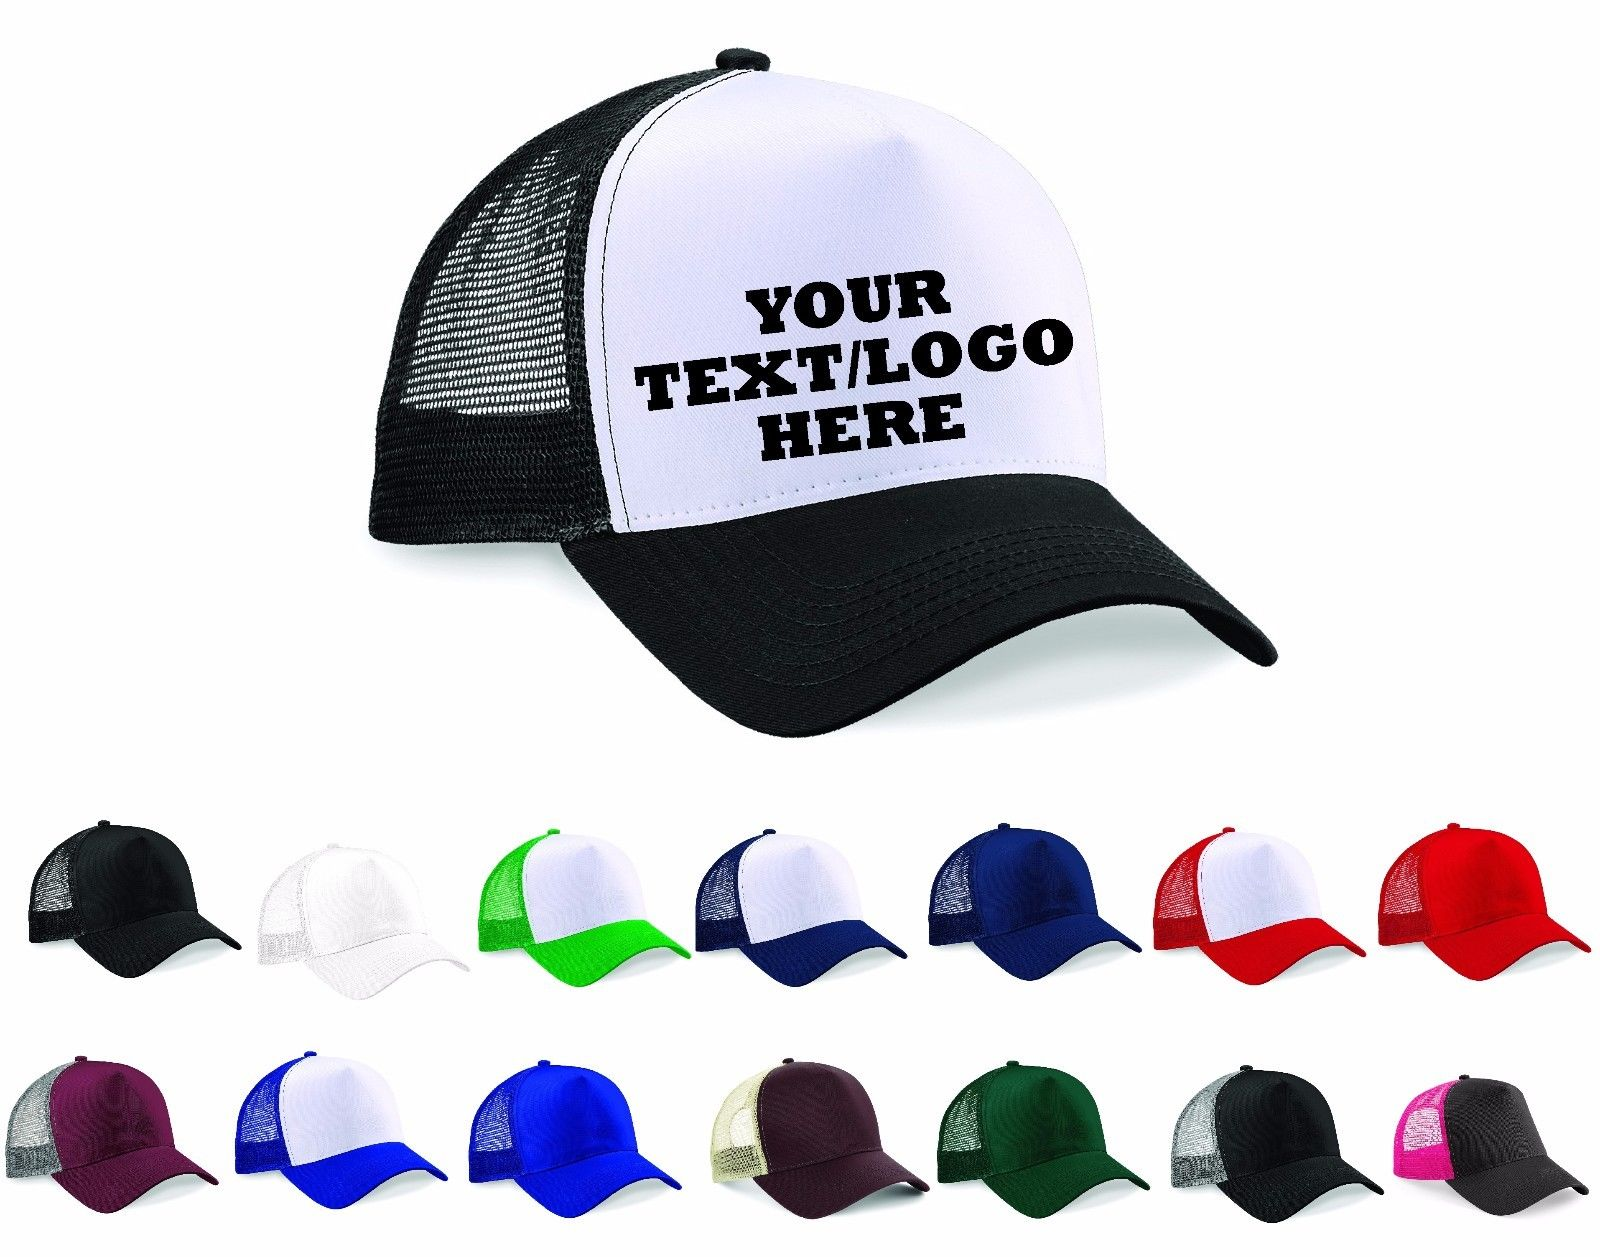 Trucker Mesh Baseball Cap,Custom 5 Panel Baseball Cap,Custom 5 Panel Baseball Cap